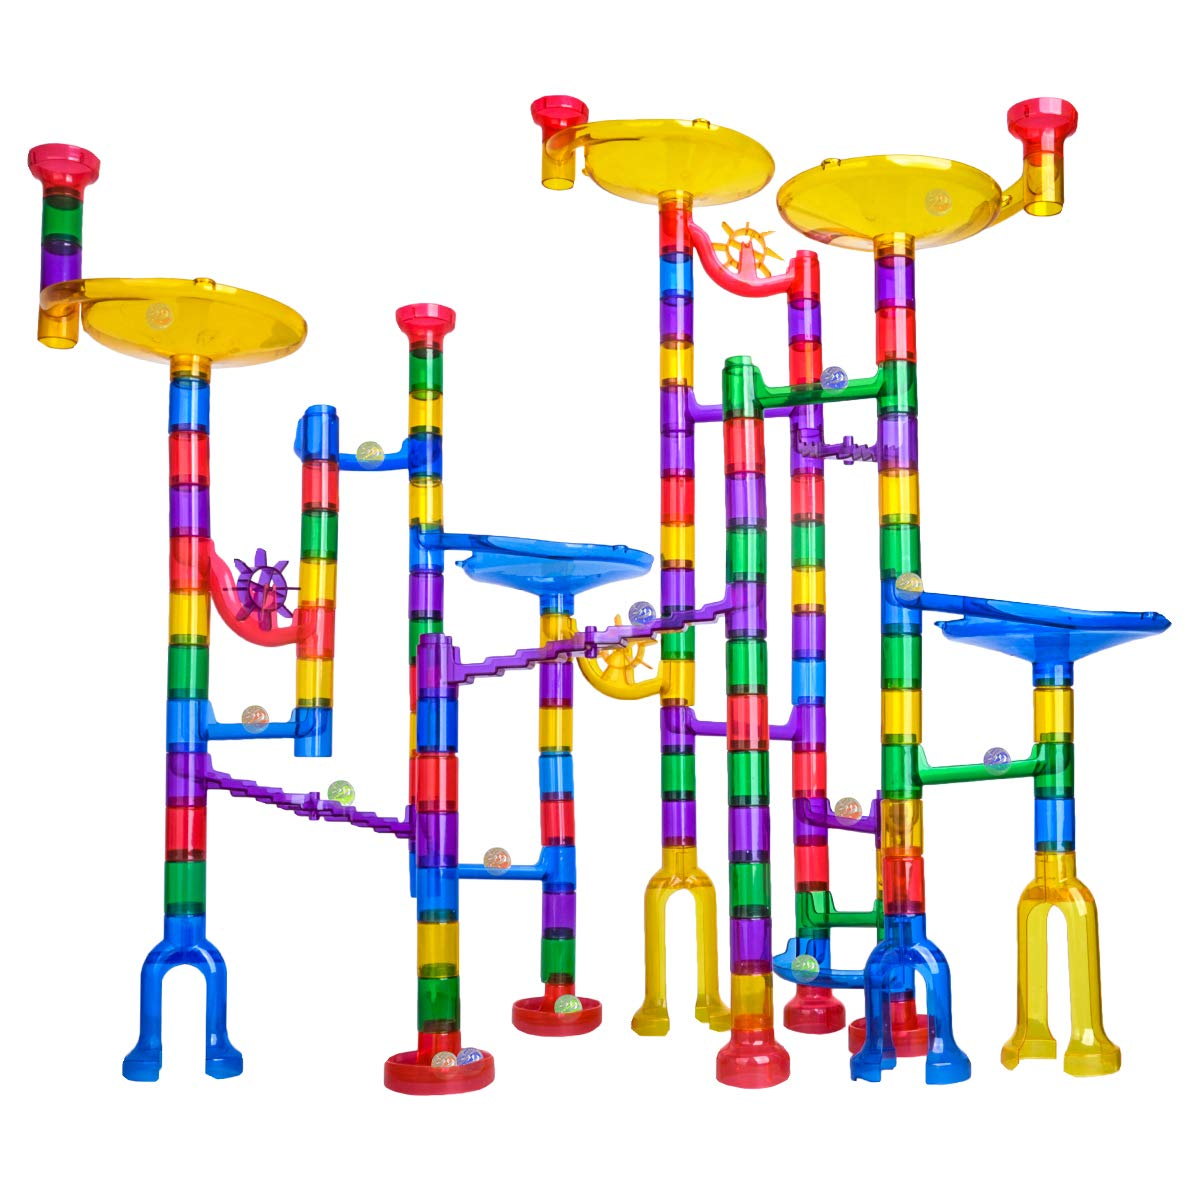 Review of Meland Marble Run - 122Pcs Marble Maze Game Building Toy for Kids